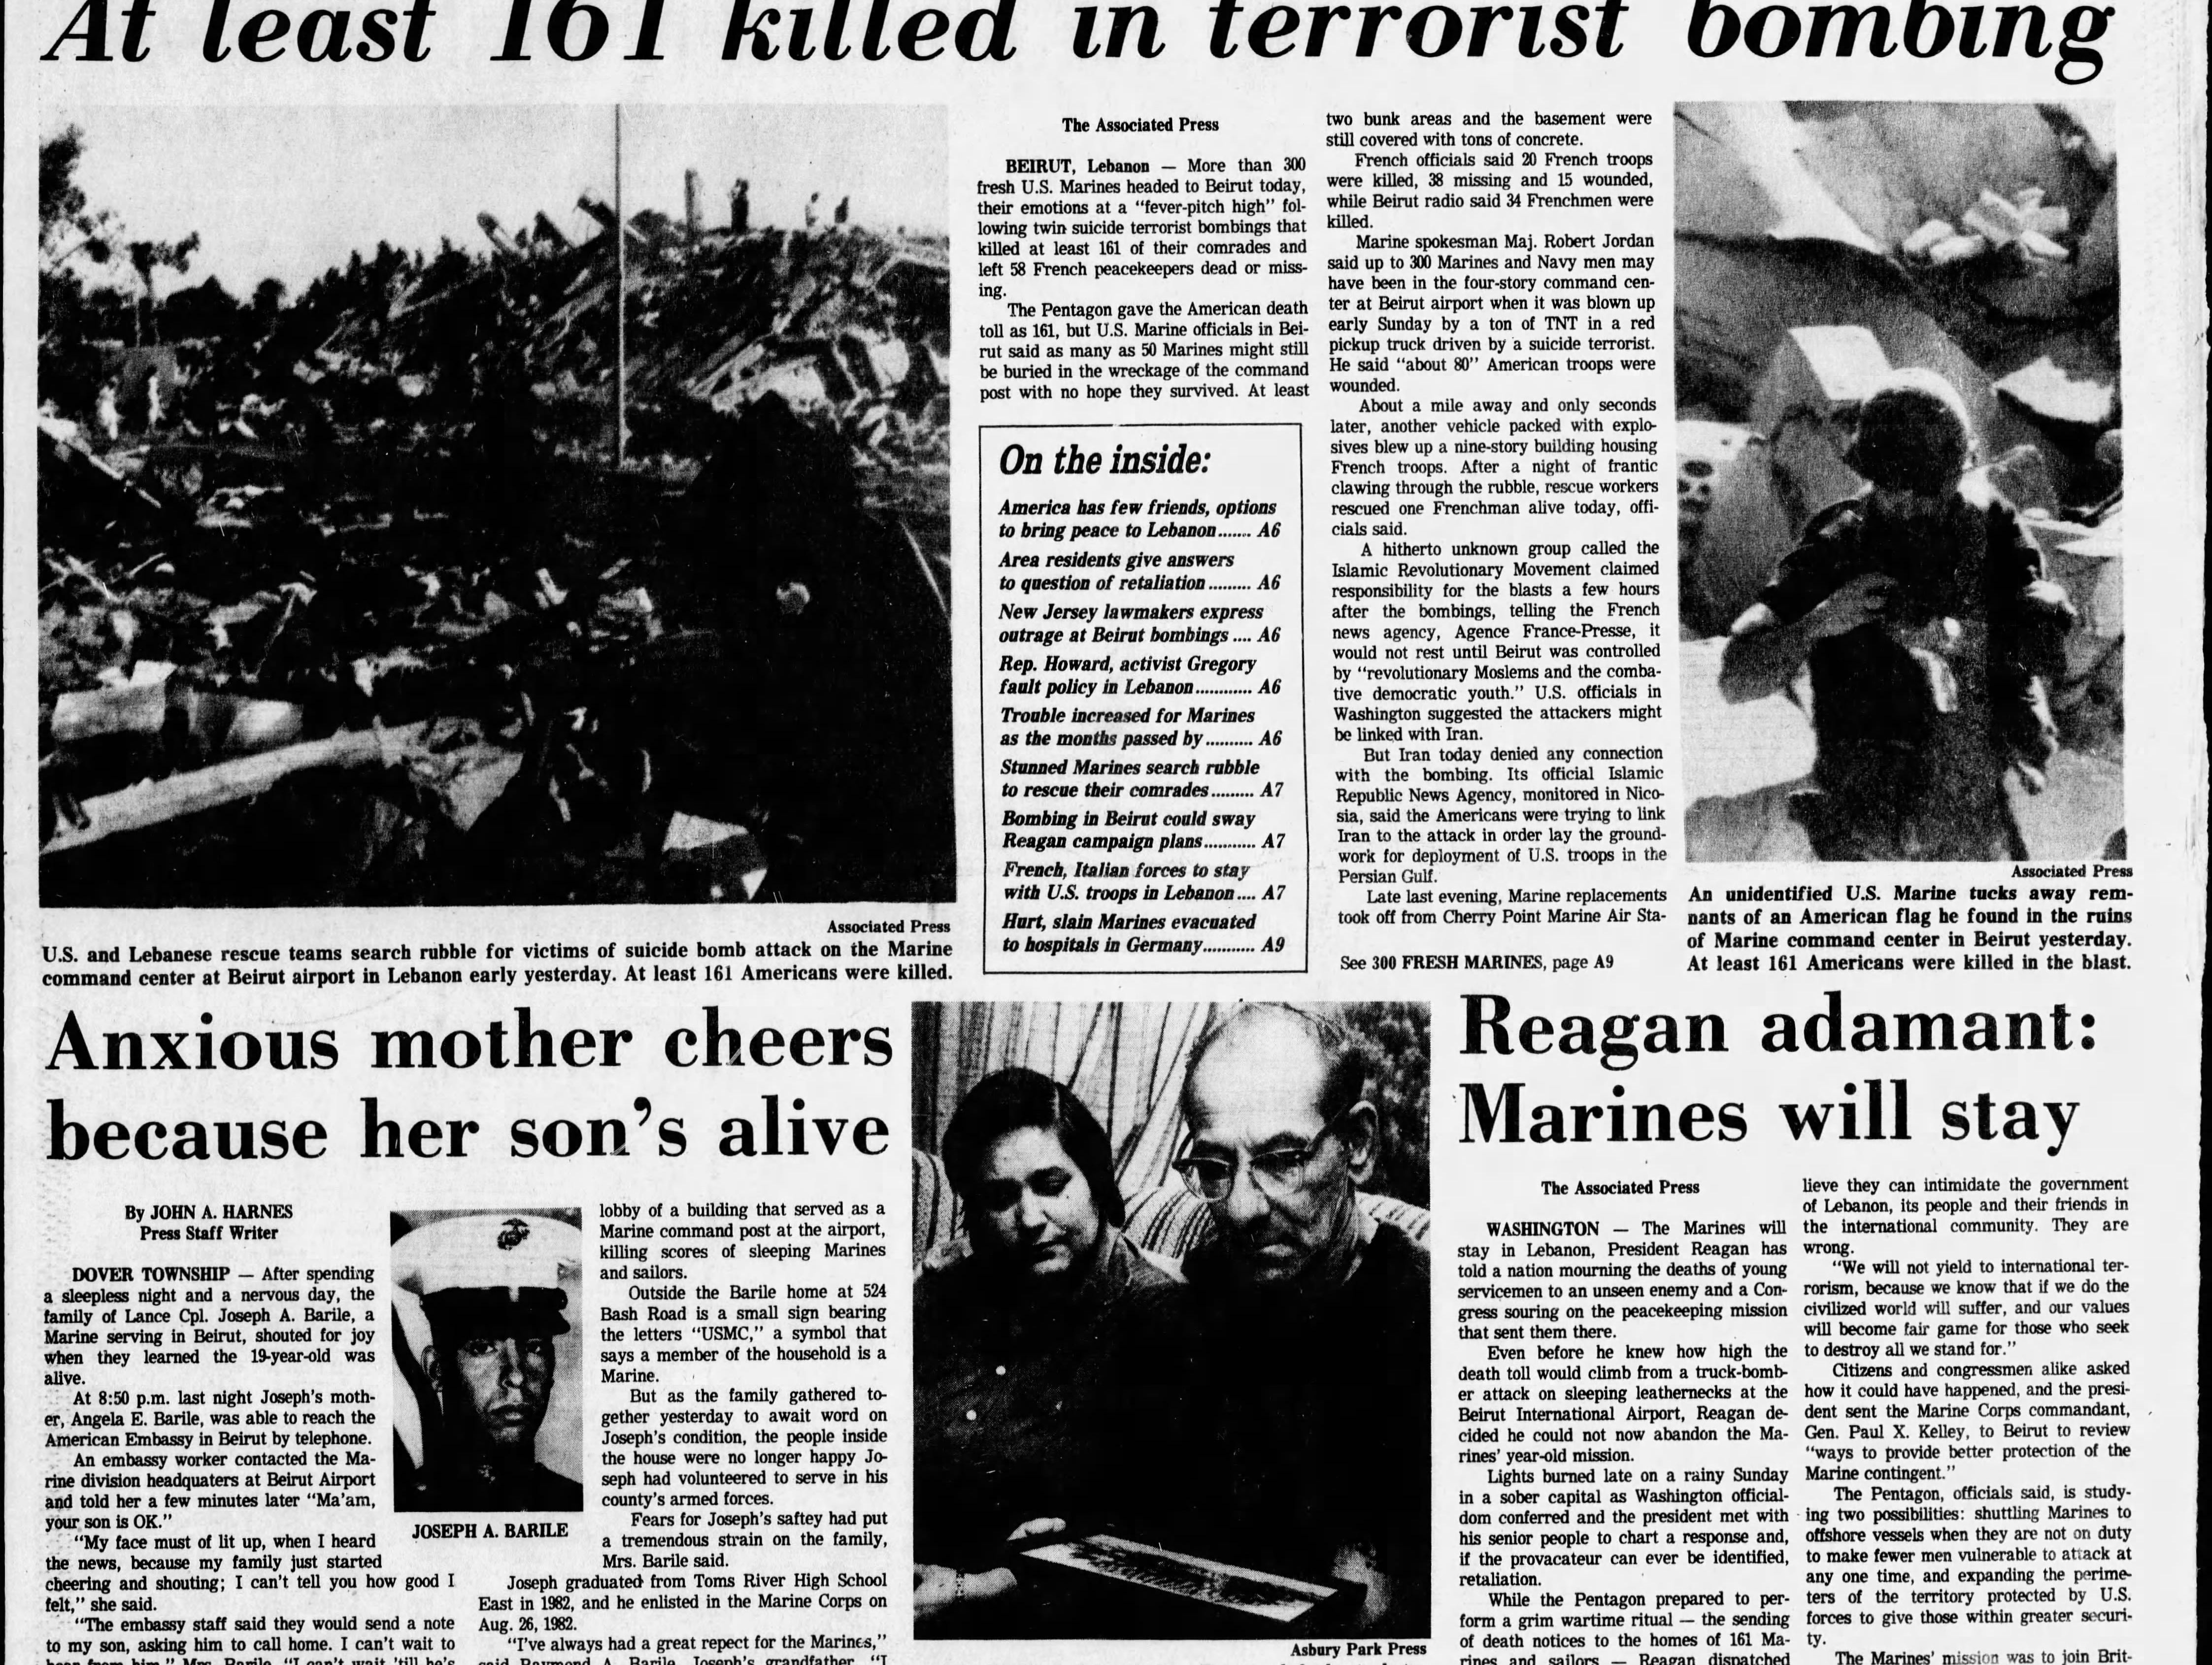 Front page coverage on Monday, Oct. 23, 1983 of the bombing of the U.S. Marine Corps barracks in Beirut that killed 220 Marines, 18 sailors and three soldiers.